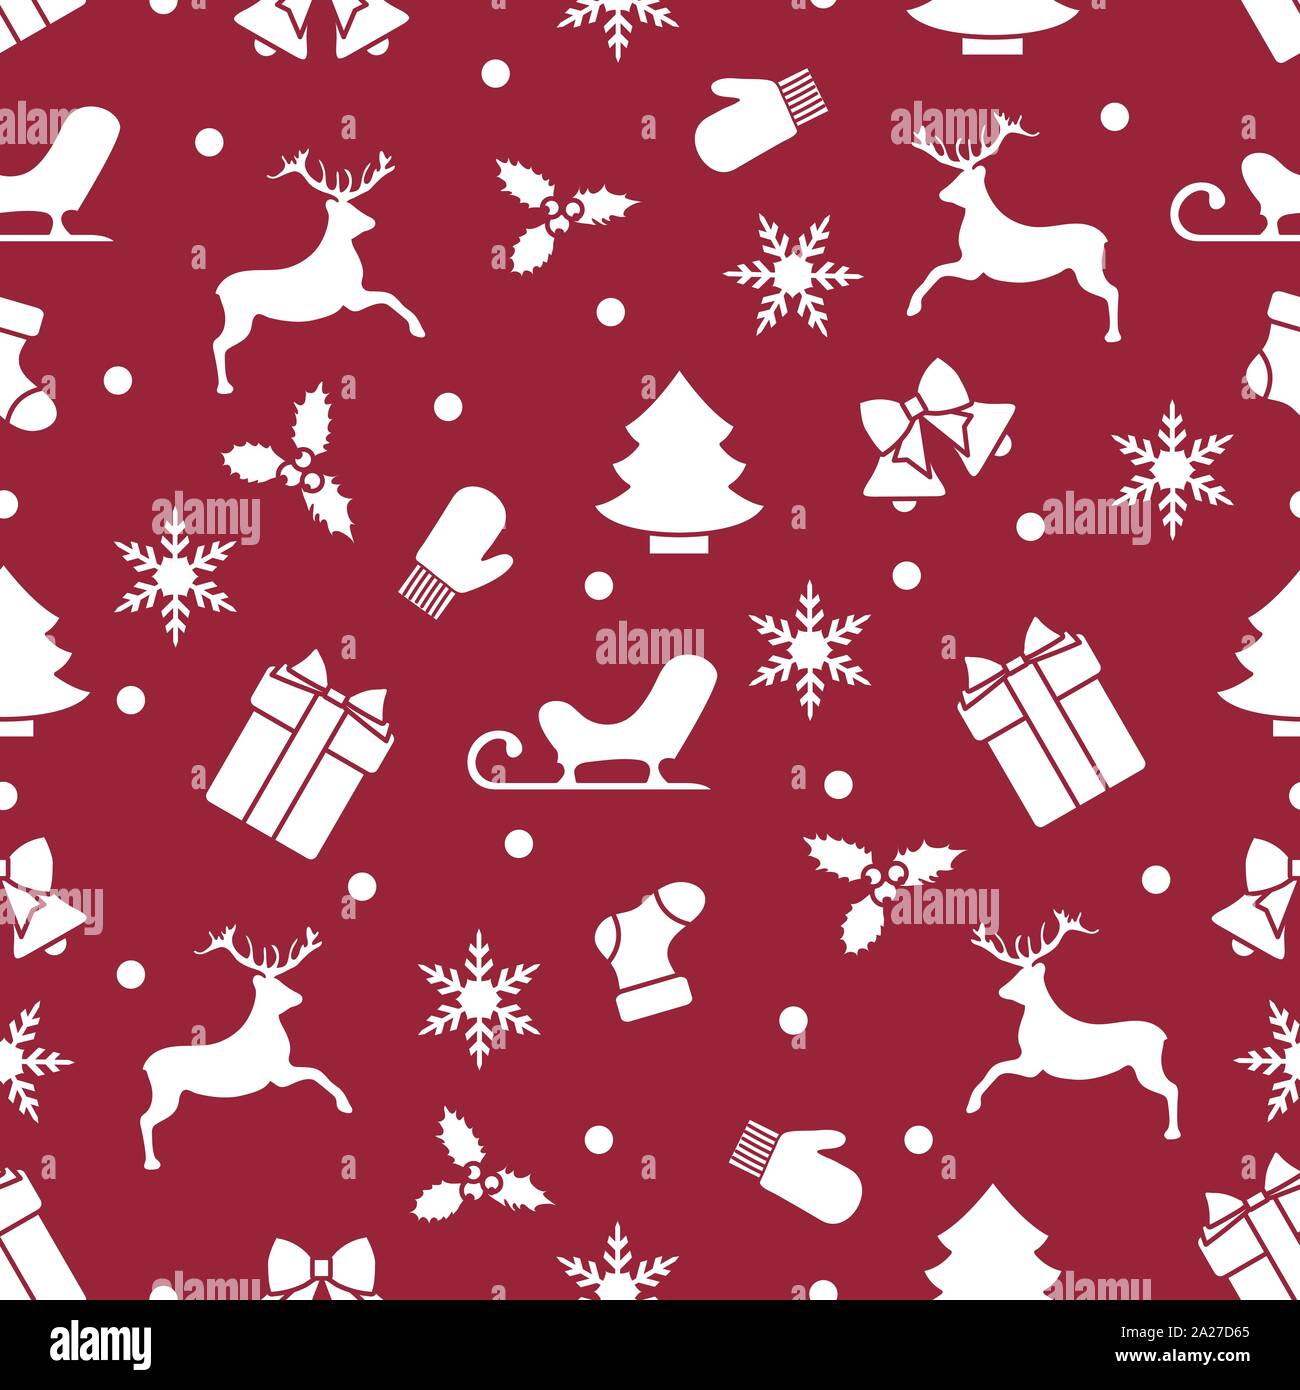 2020 Christmas Pattern With Santa Claus Merry Christmas Happy New Year 2020. Vector seamless pattern with